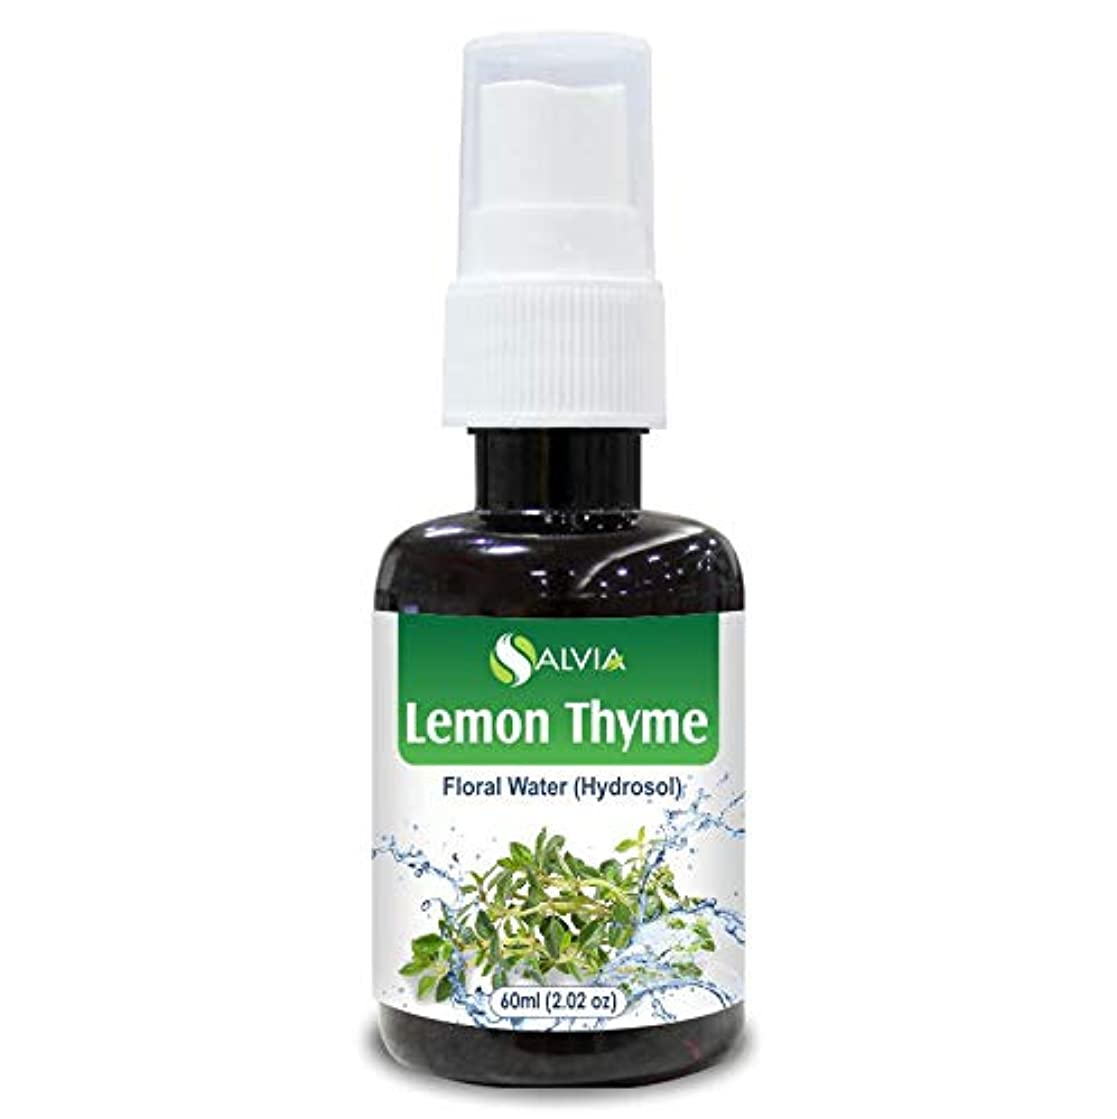 Lemon Thyme Floral Water 60ml (Hydrosol) 100% Pure And Natural